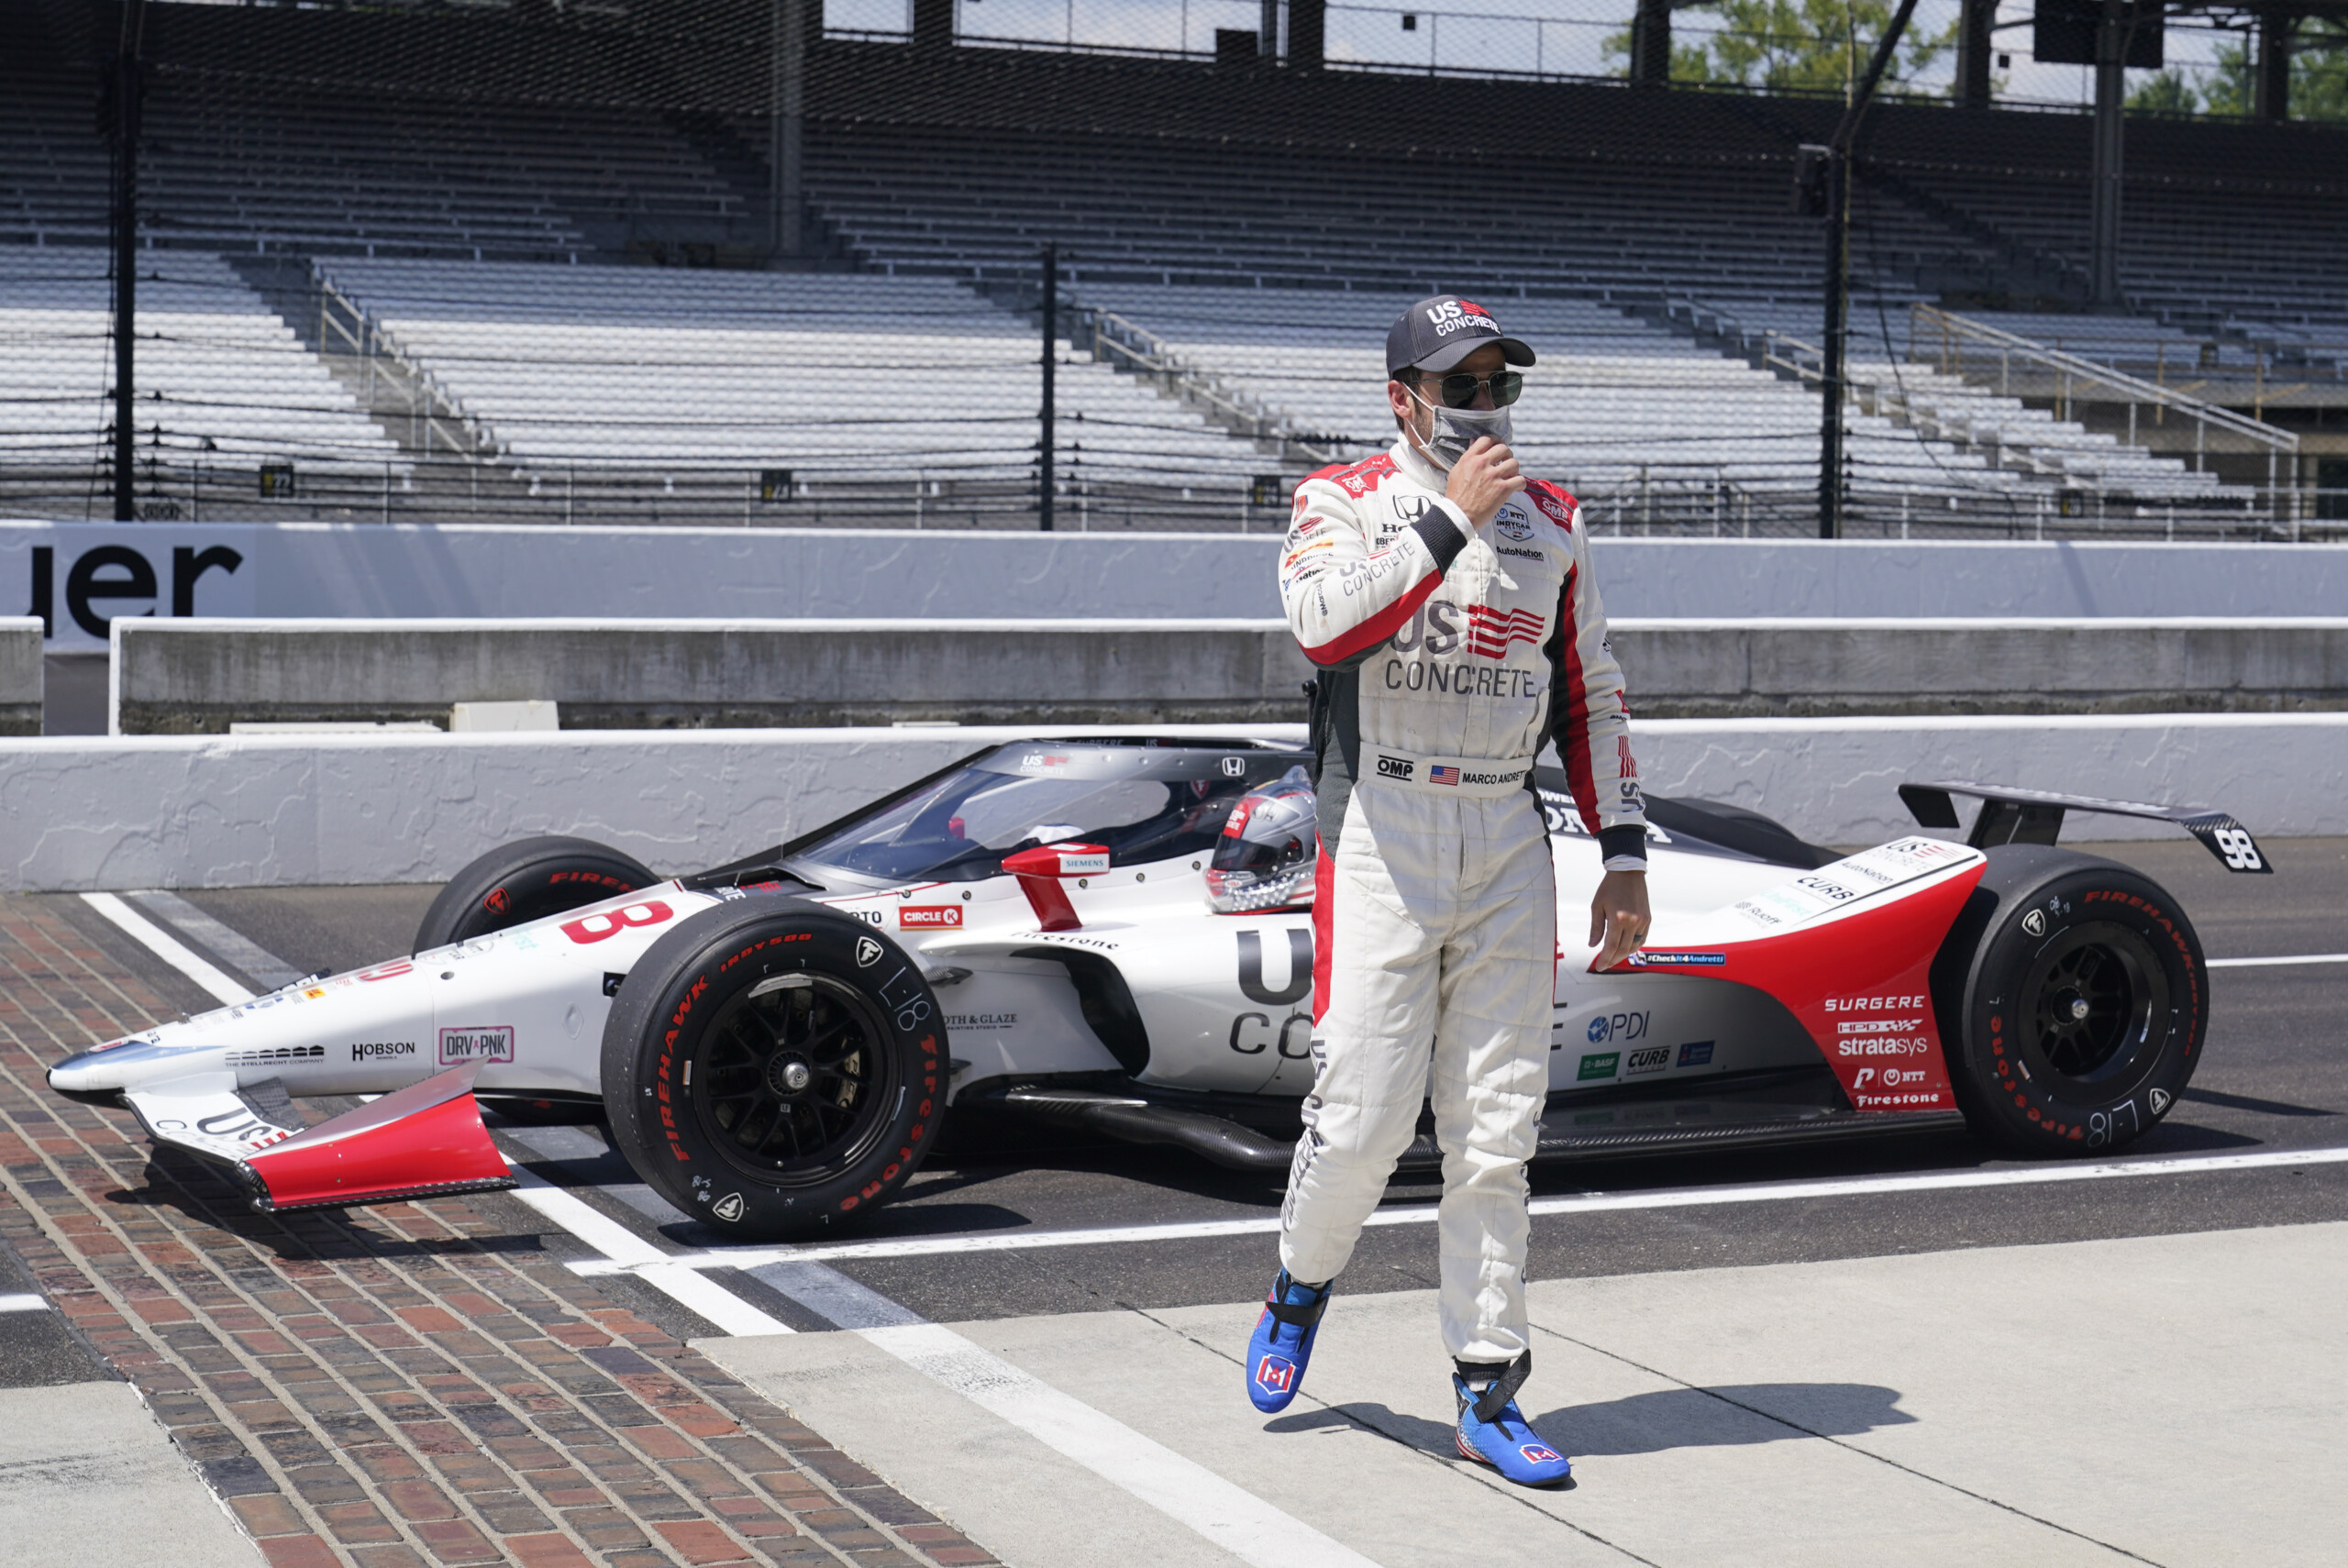 Day 1 Indianapolis 500 Qualifying Results Wish Tv Indianapolis News Indiana Weather Indiana Traffic